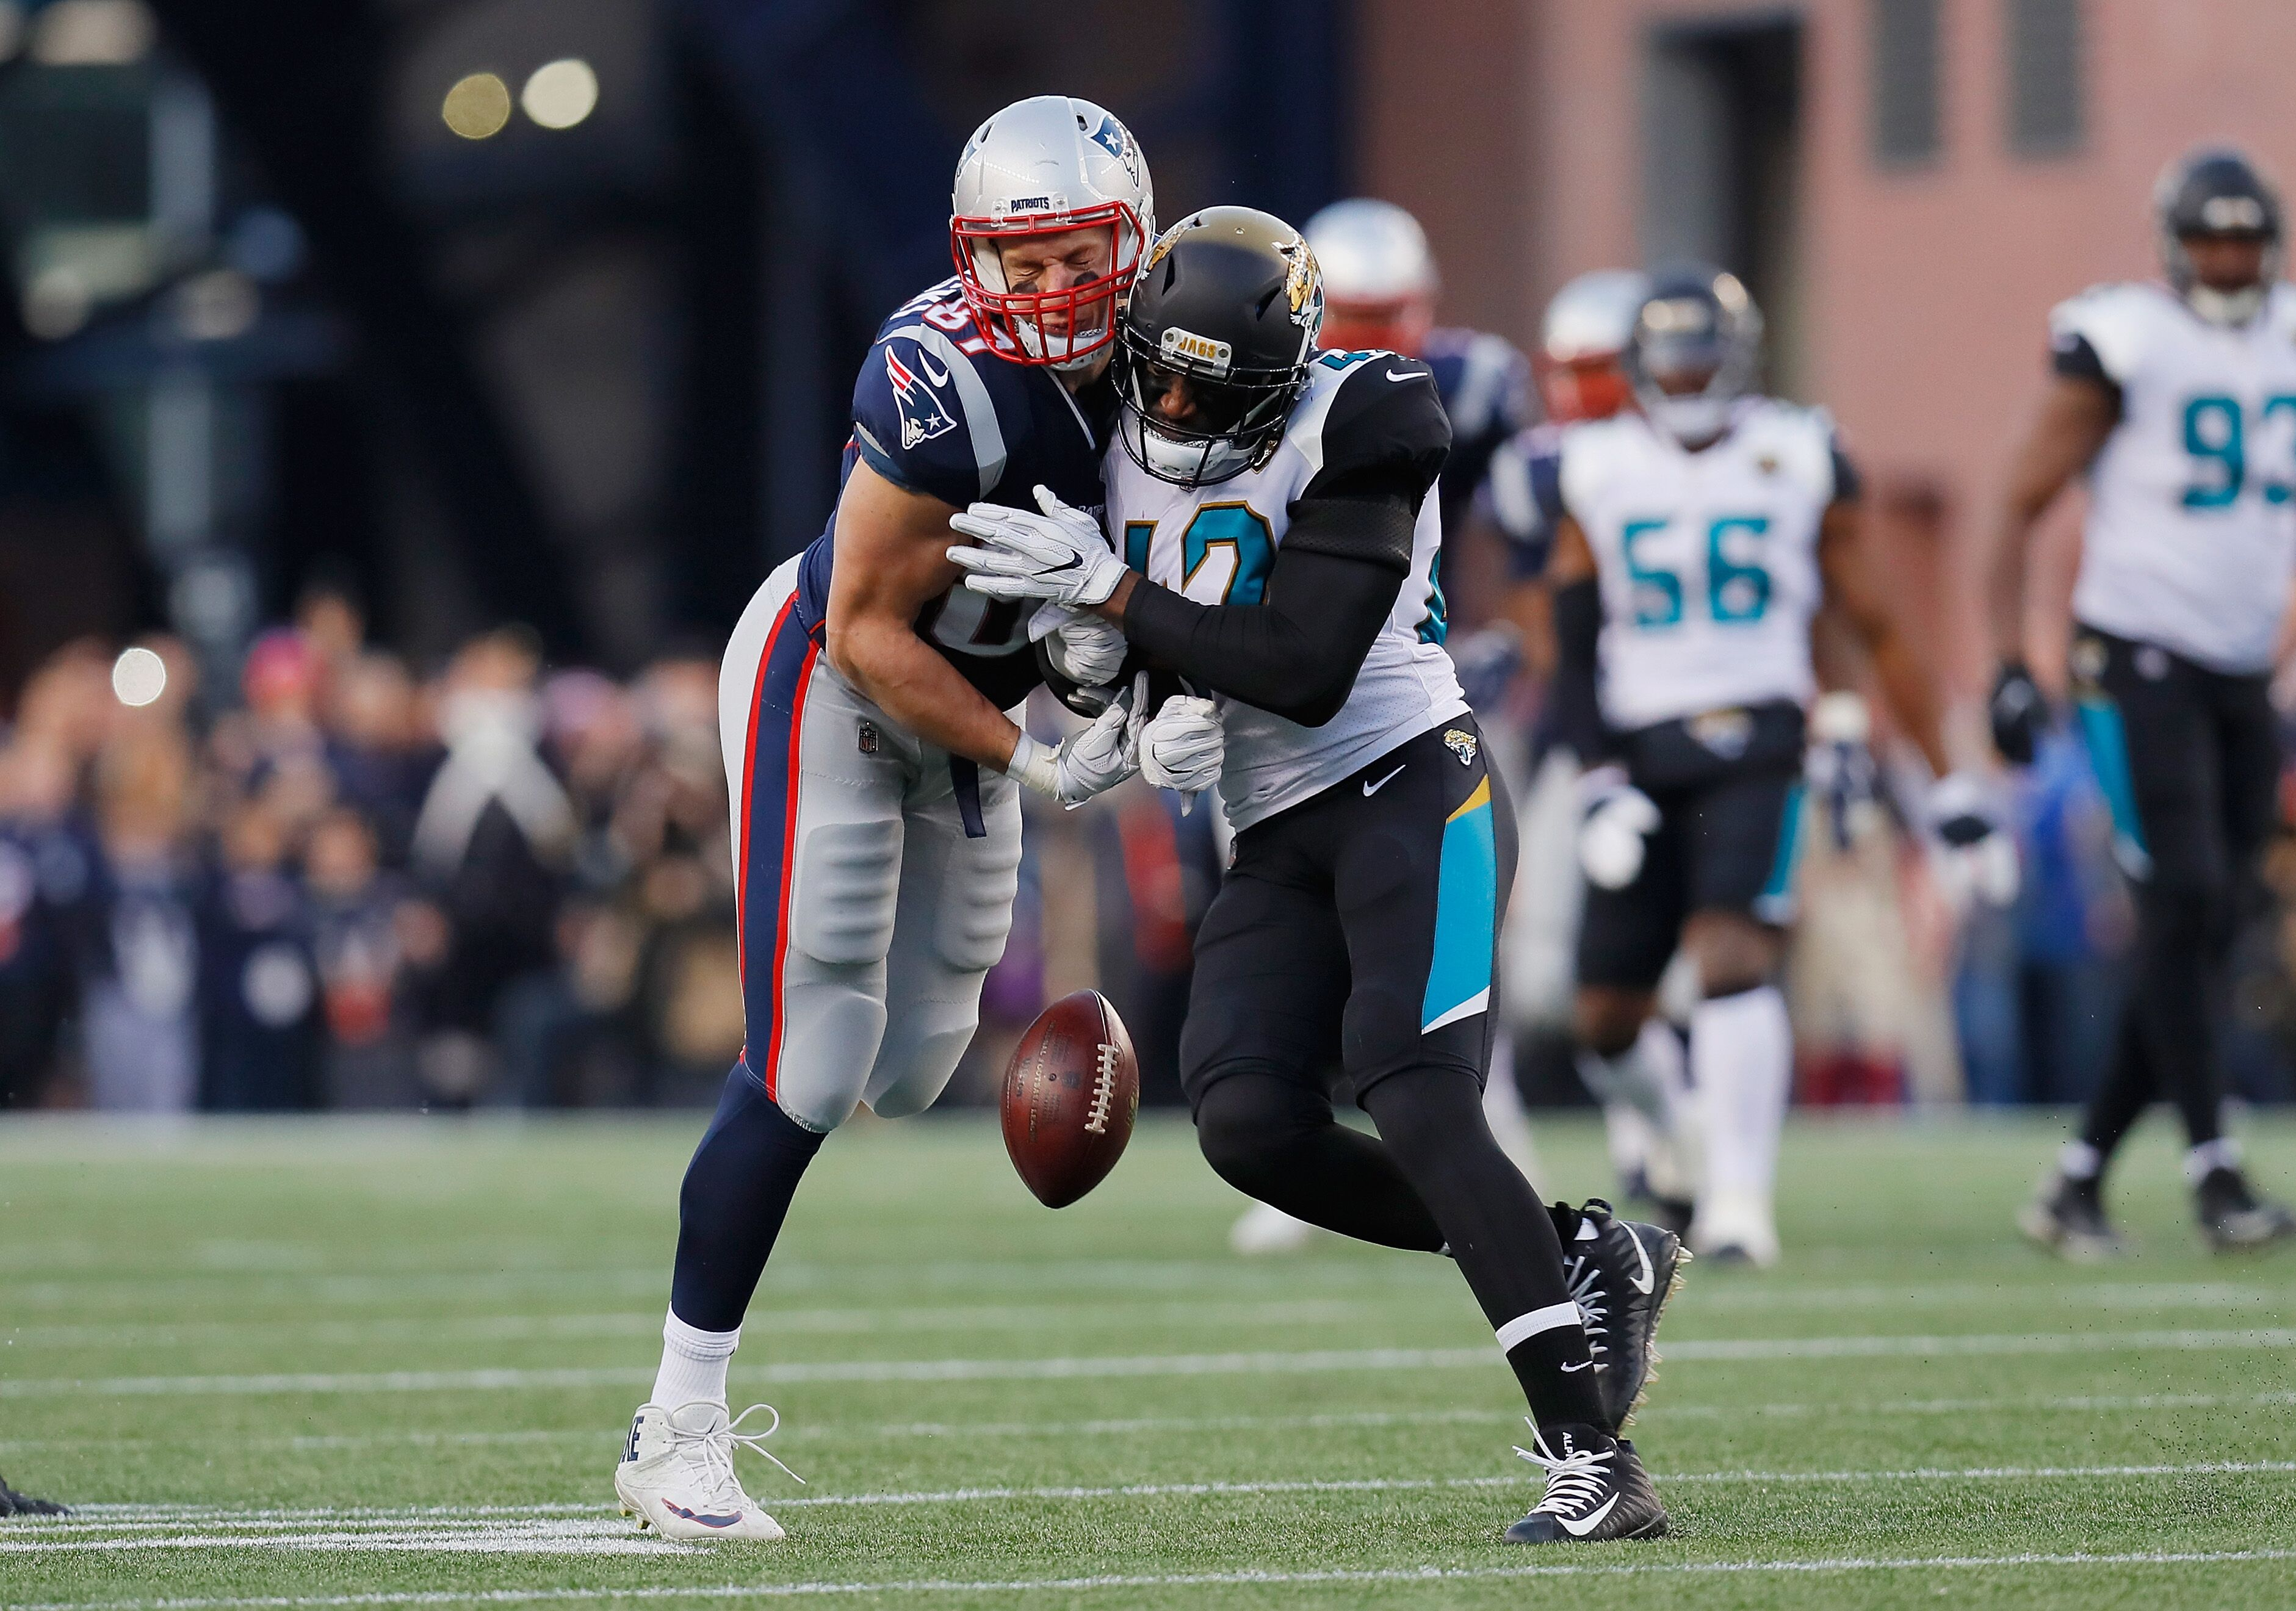 f9c799803 Patriots  Rob Gronkowski takes wicked hit to the head - Read NFL news